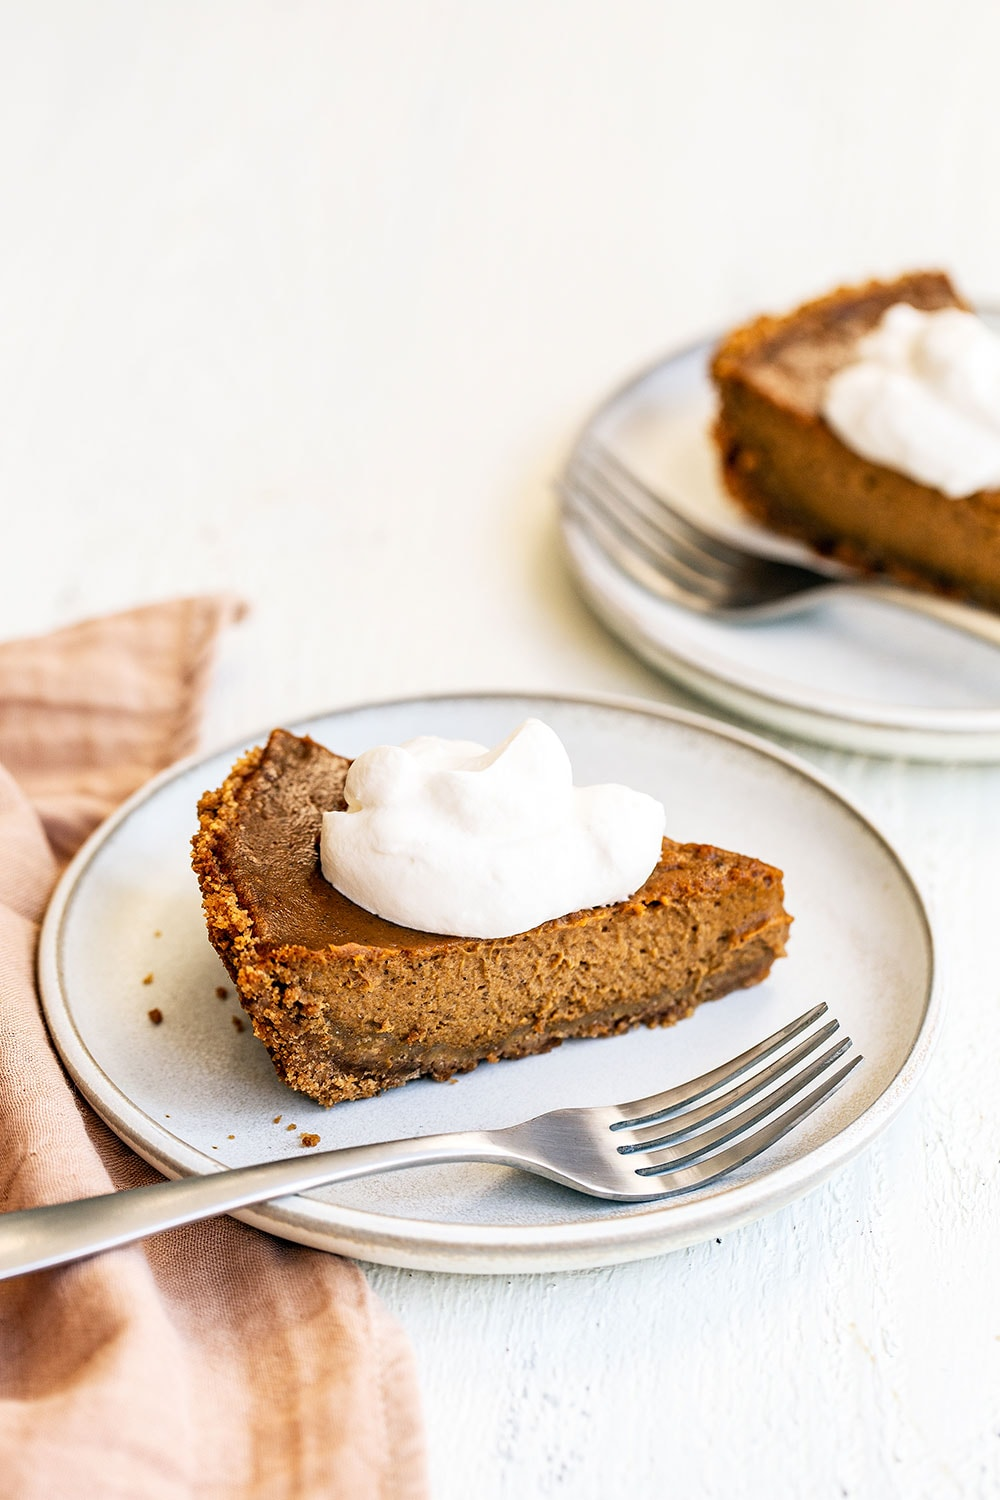 Slice of easy pumpkin pie on a plate with a dollop of whipped cream on top